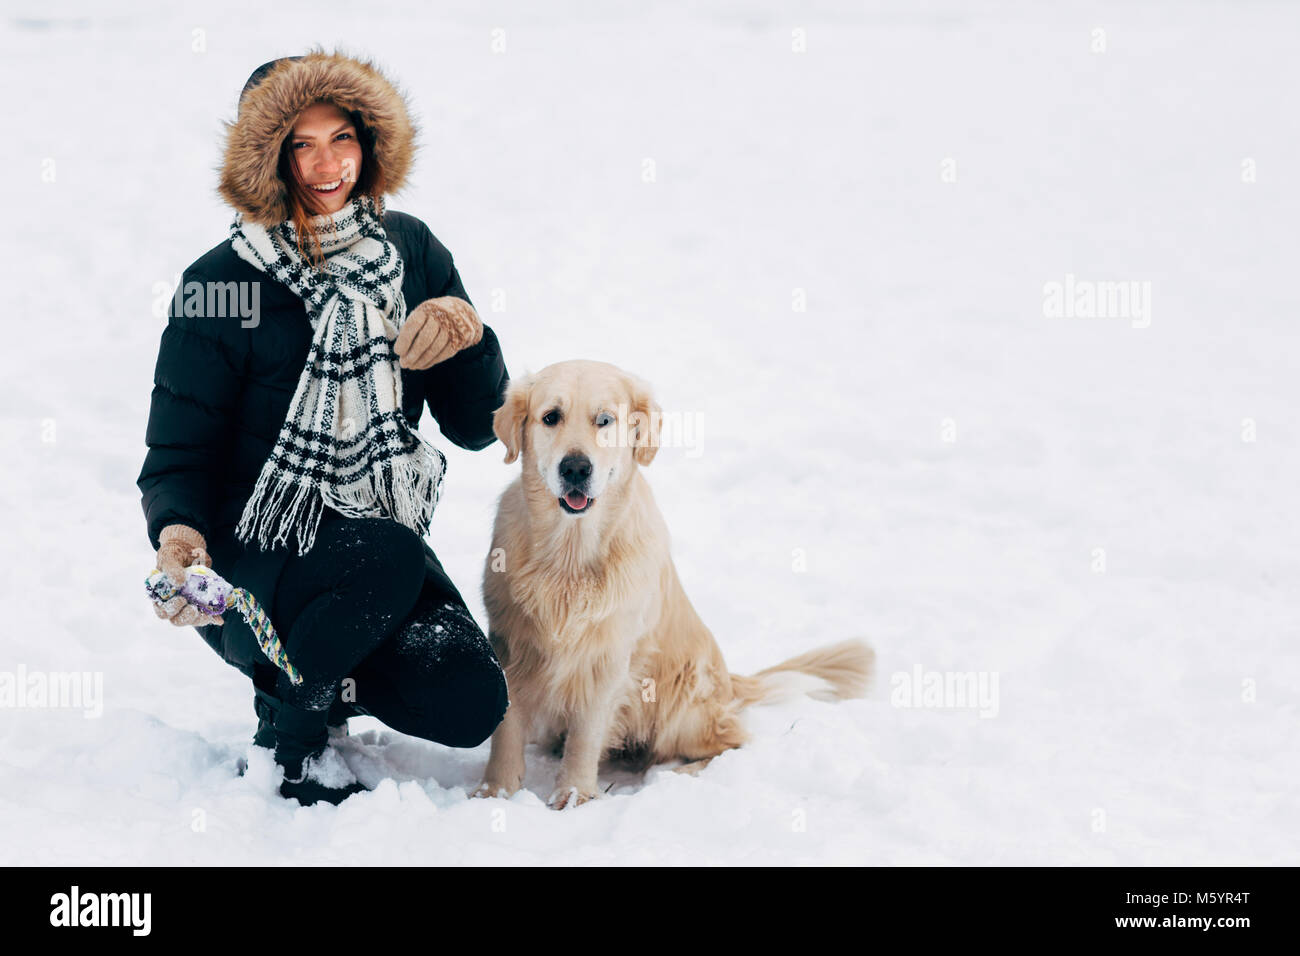 Photo of smiling girl with dog in winter park - Stock Image